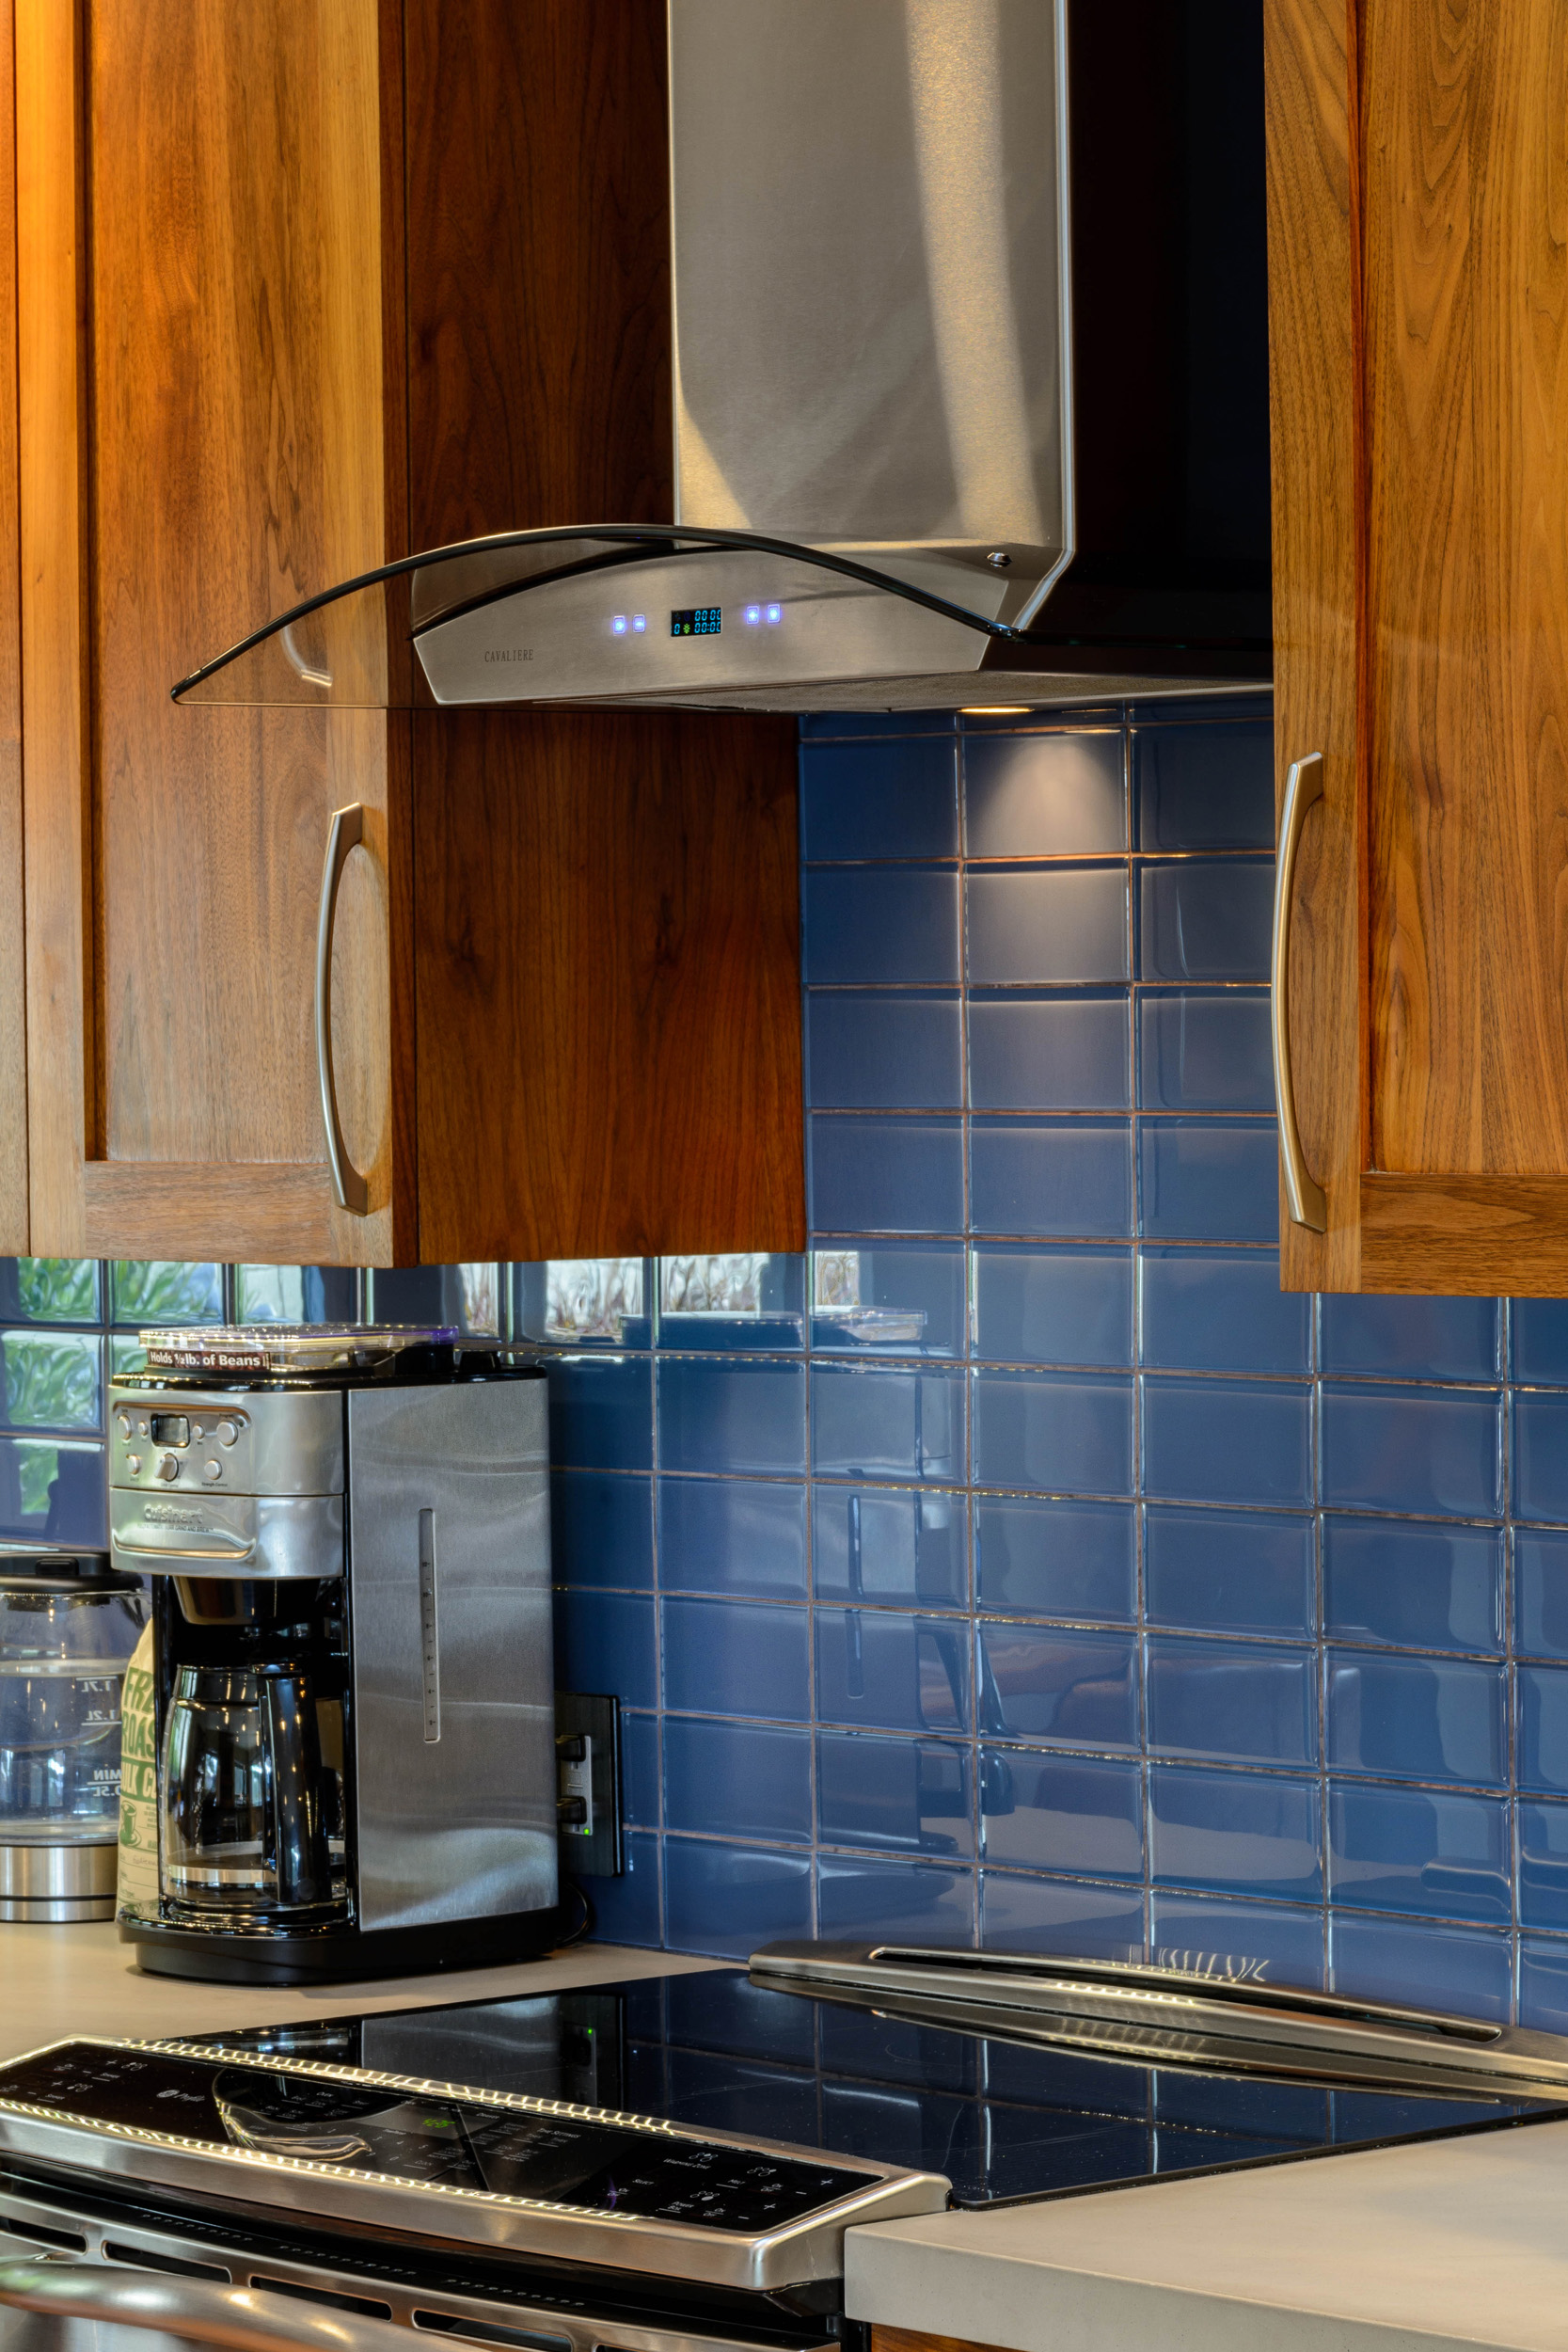 Warm-Contemporary-Kitchen-Blue-Glass-Backsplash-Hood-Range.jpg